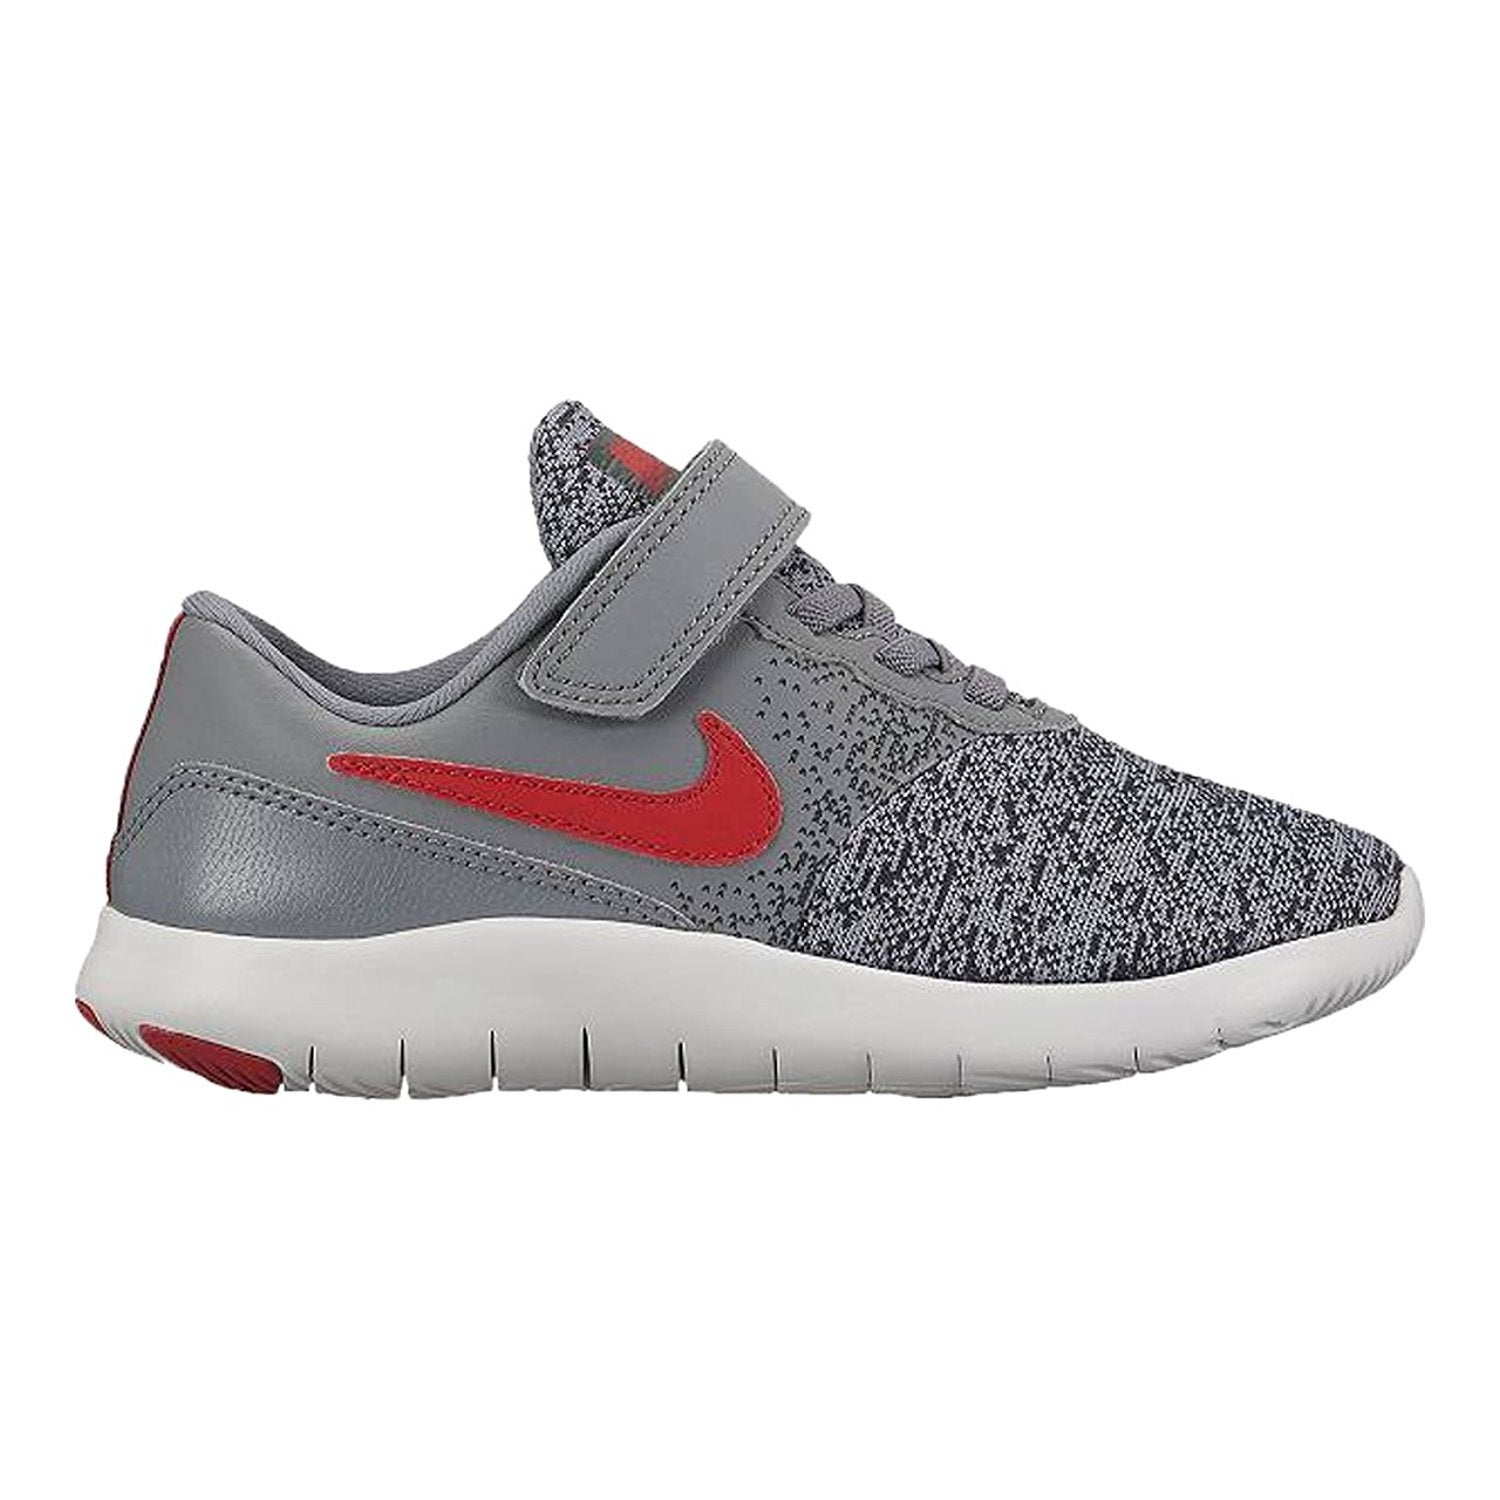 371e848731141 Shop Nike Kids Flex Contact Little Kid Cool Grey University Red Anthracite  Boys Shoes - cool grey university red - Free Shipping Today - Overstock -  ...